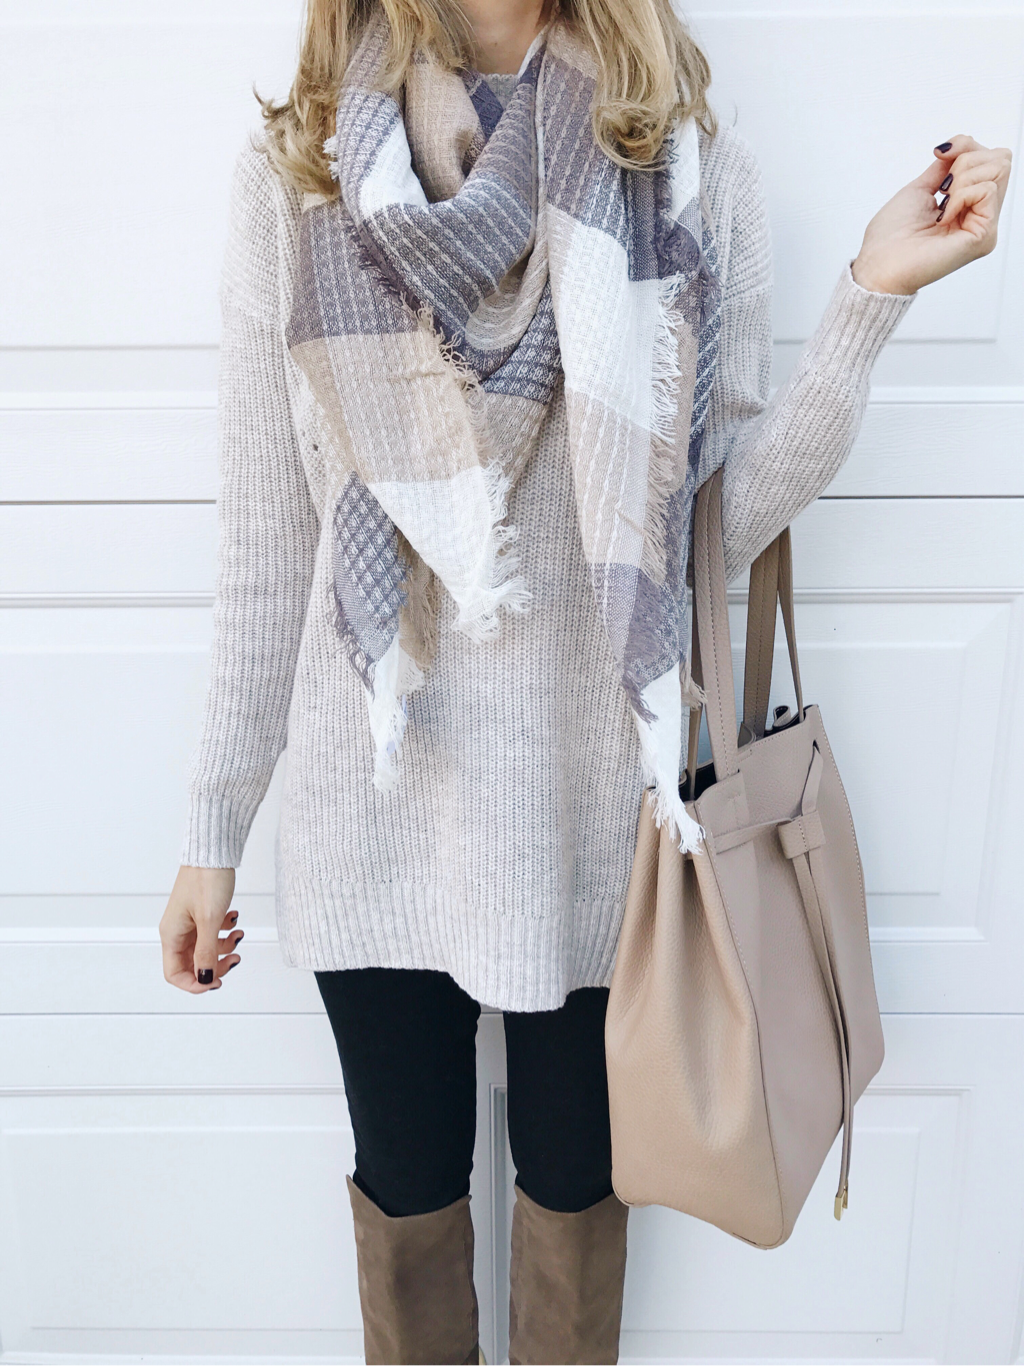 25 Cute Winter Outfit Ideas for 2019 – Outfits for Winter pics